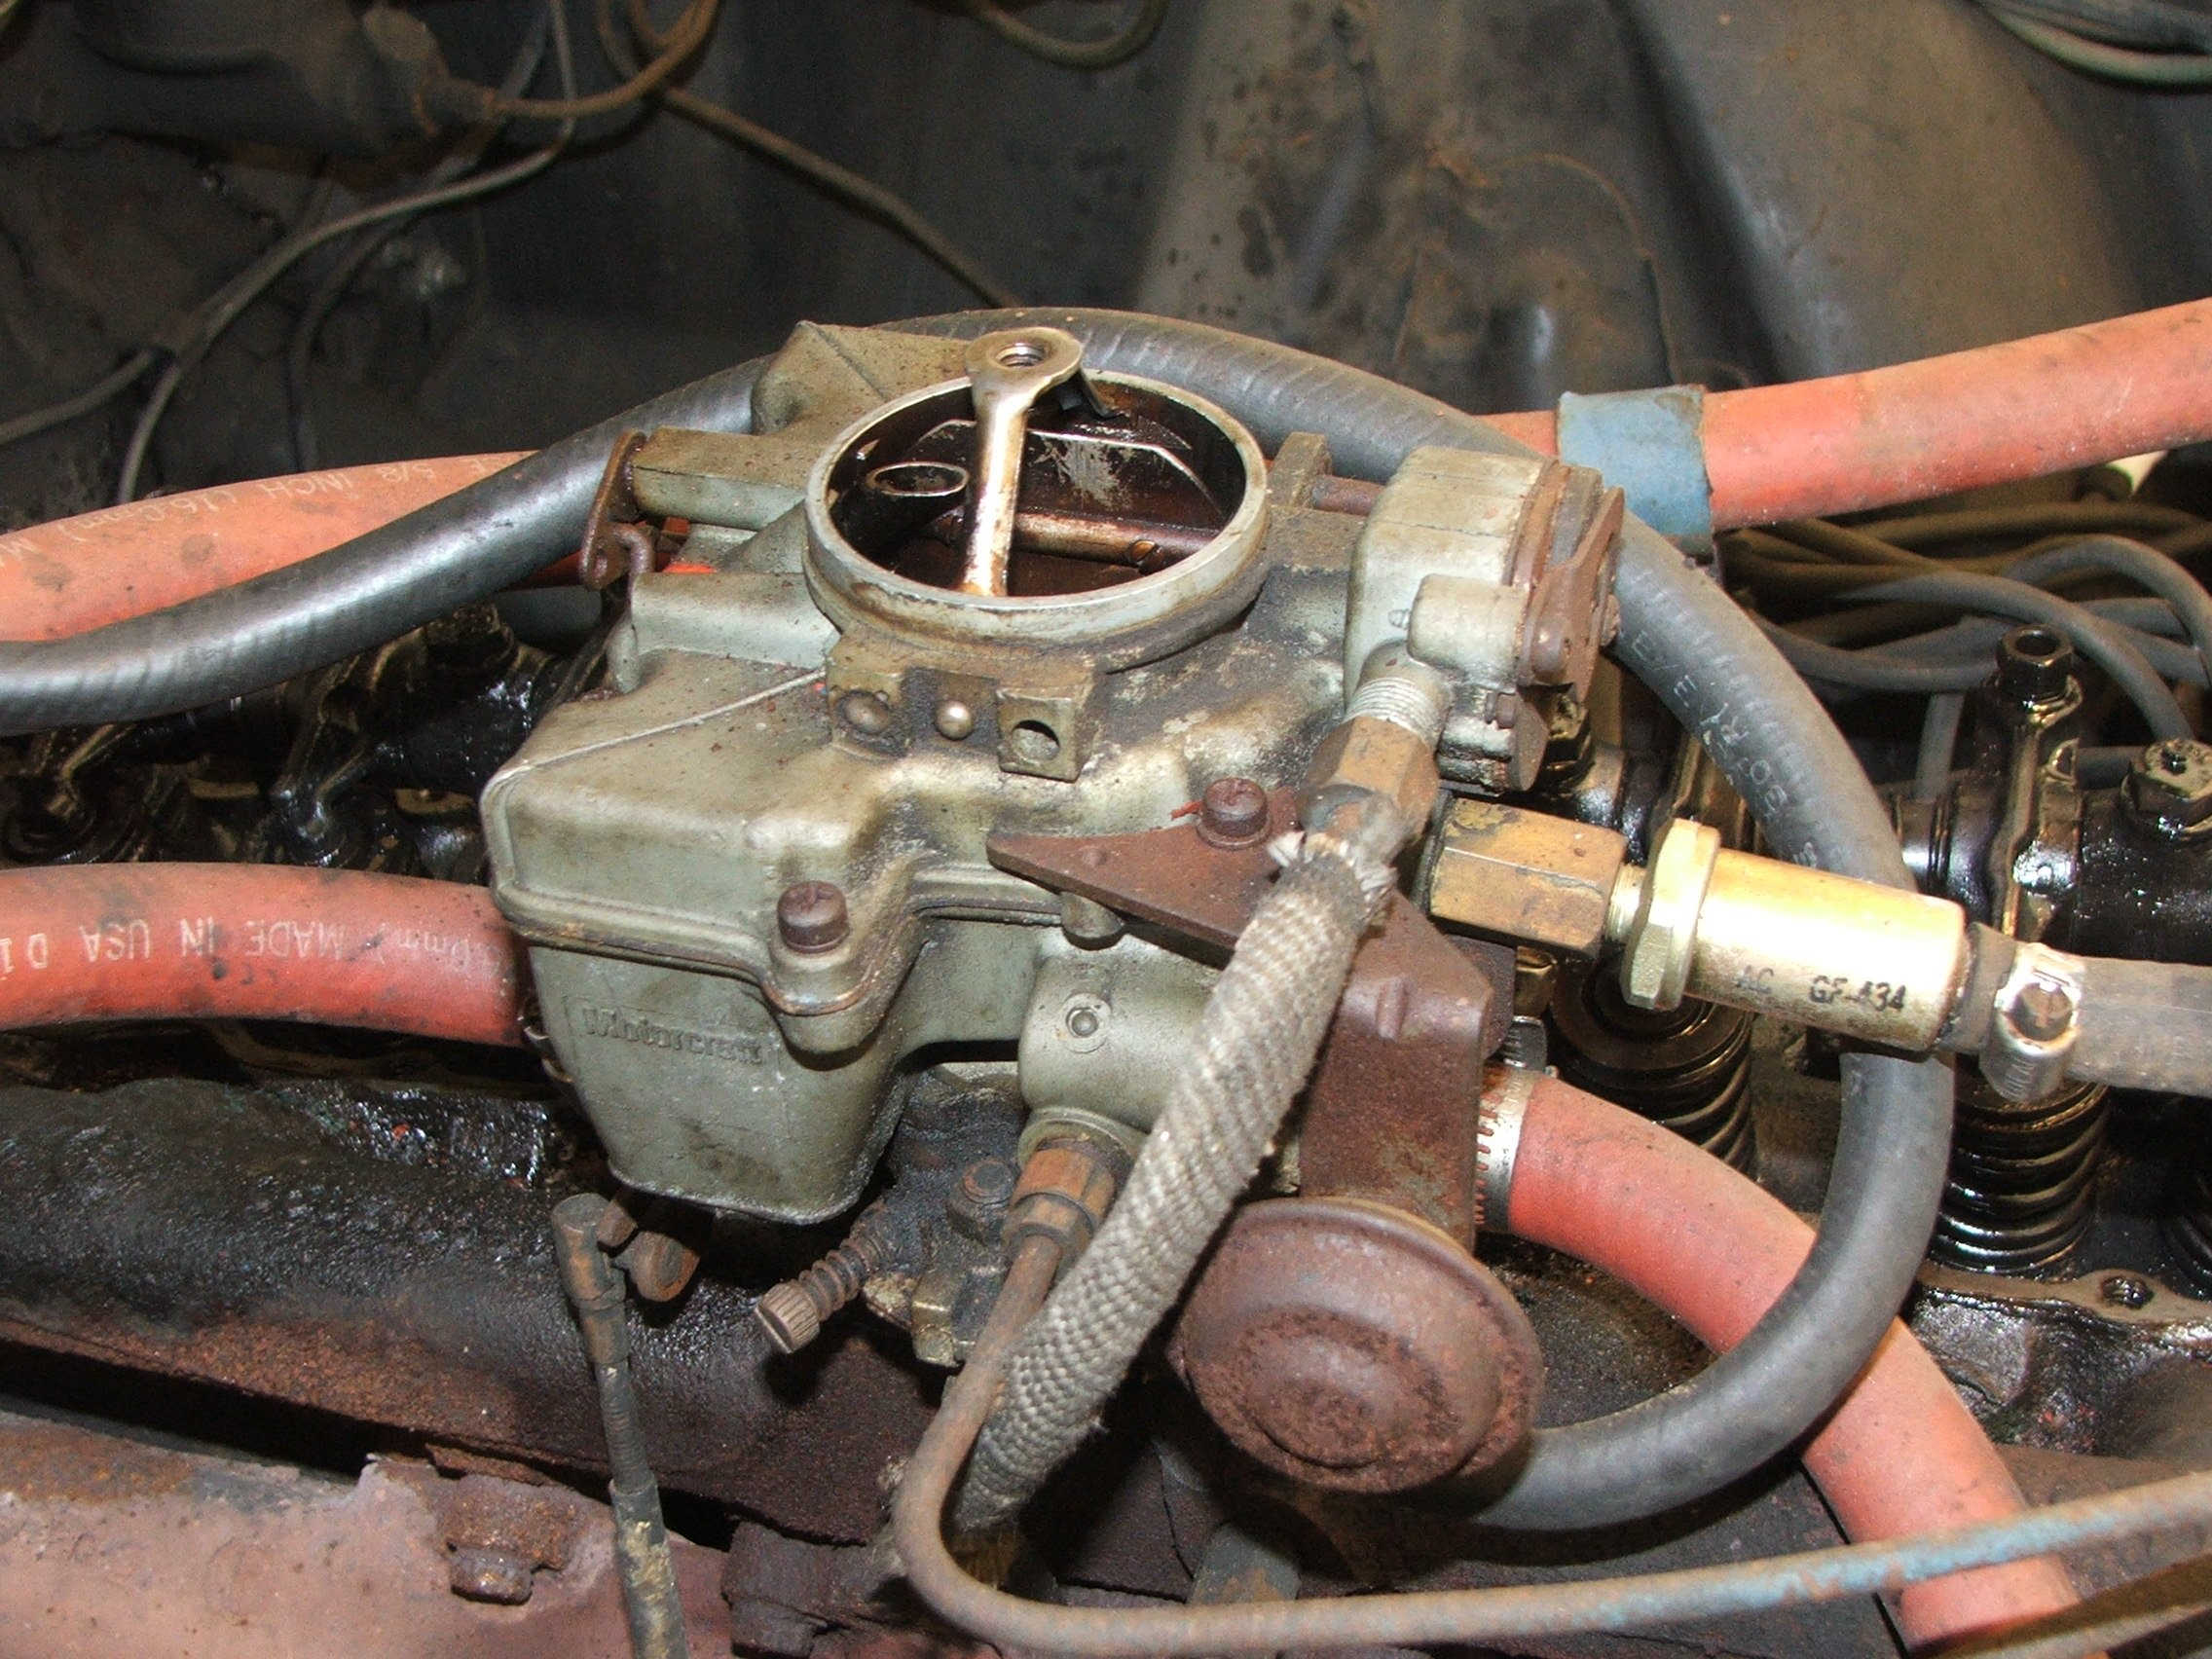 Holley Model 1940 Carburetor http://www.allfordmustangs.com/forums/classic-tech/158542-what-model-1-barrel.html